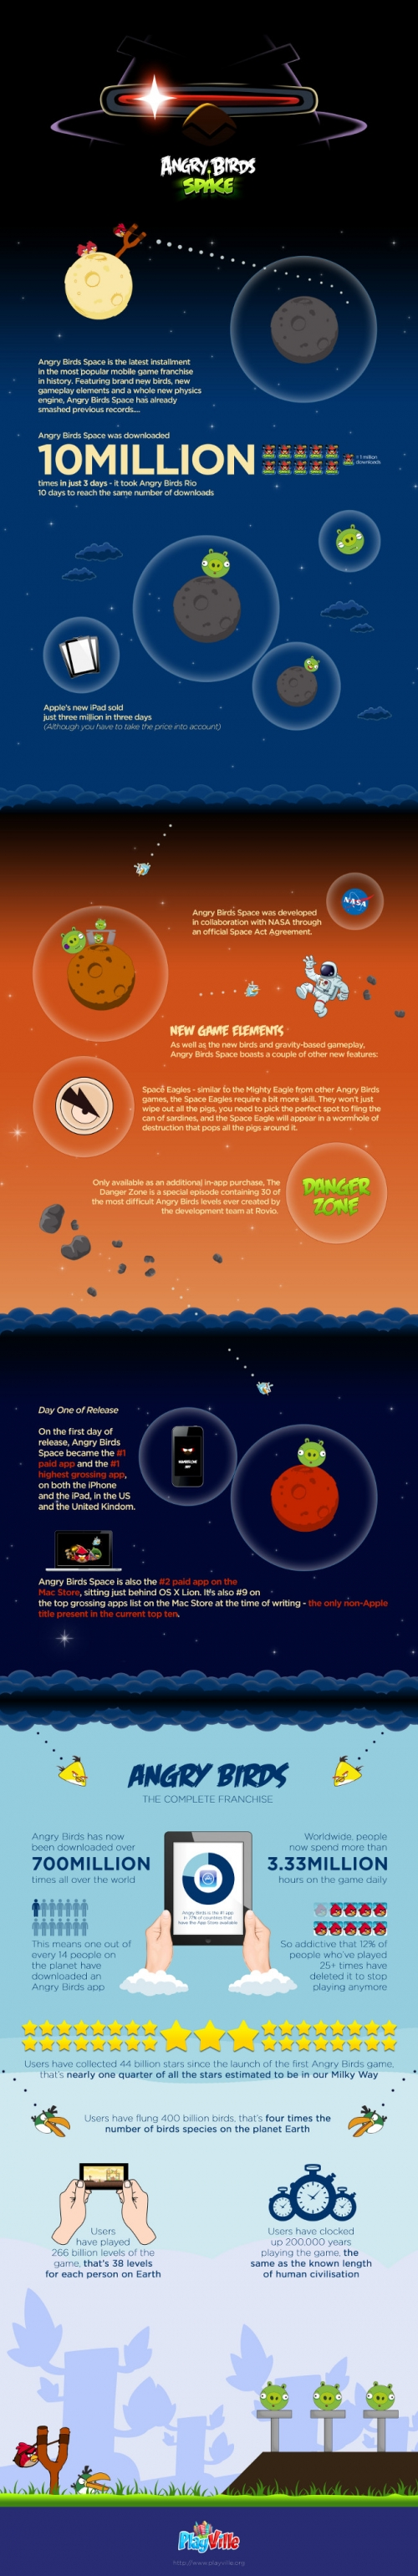 Angry birds space Vs. Angry birds